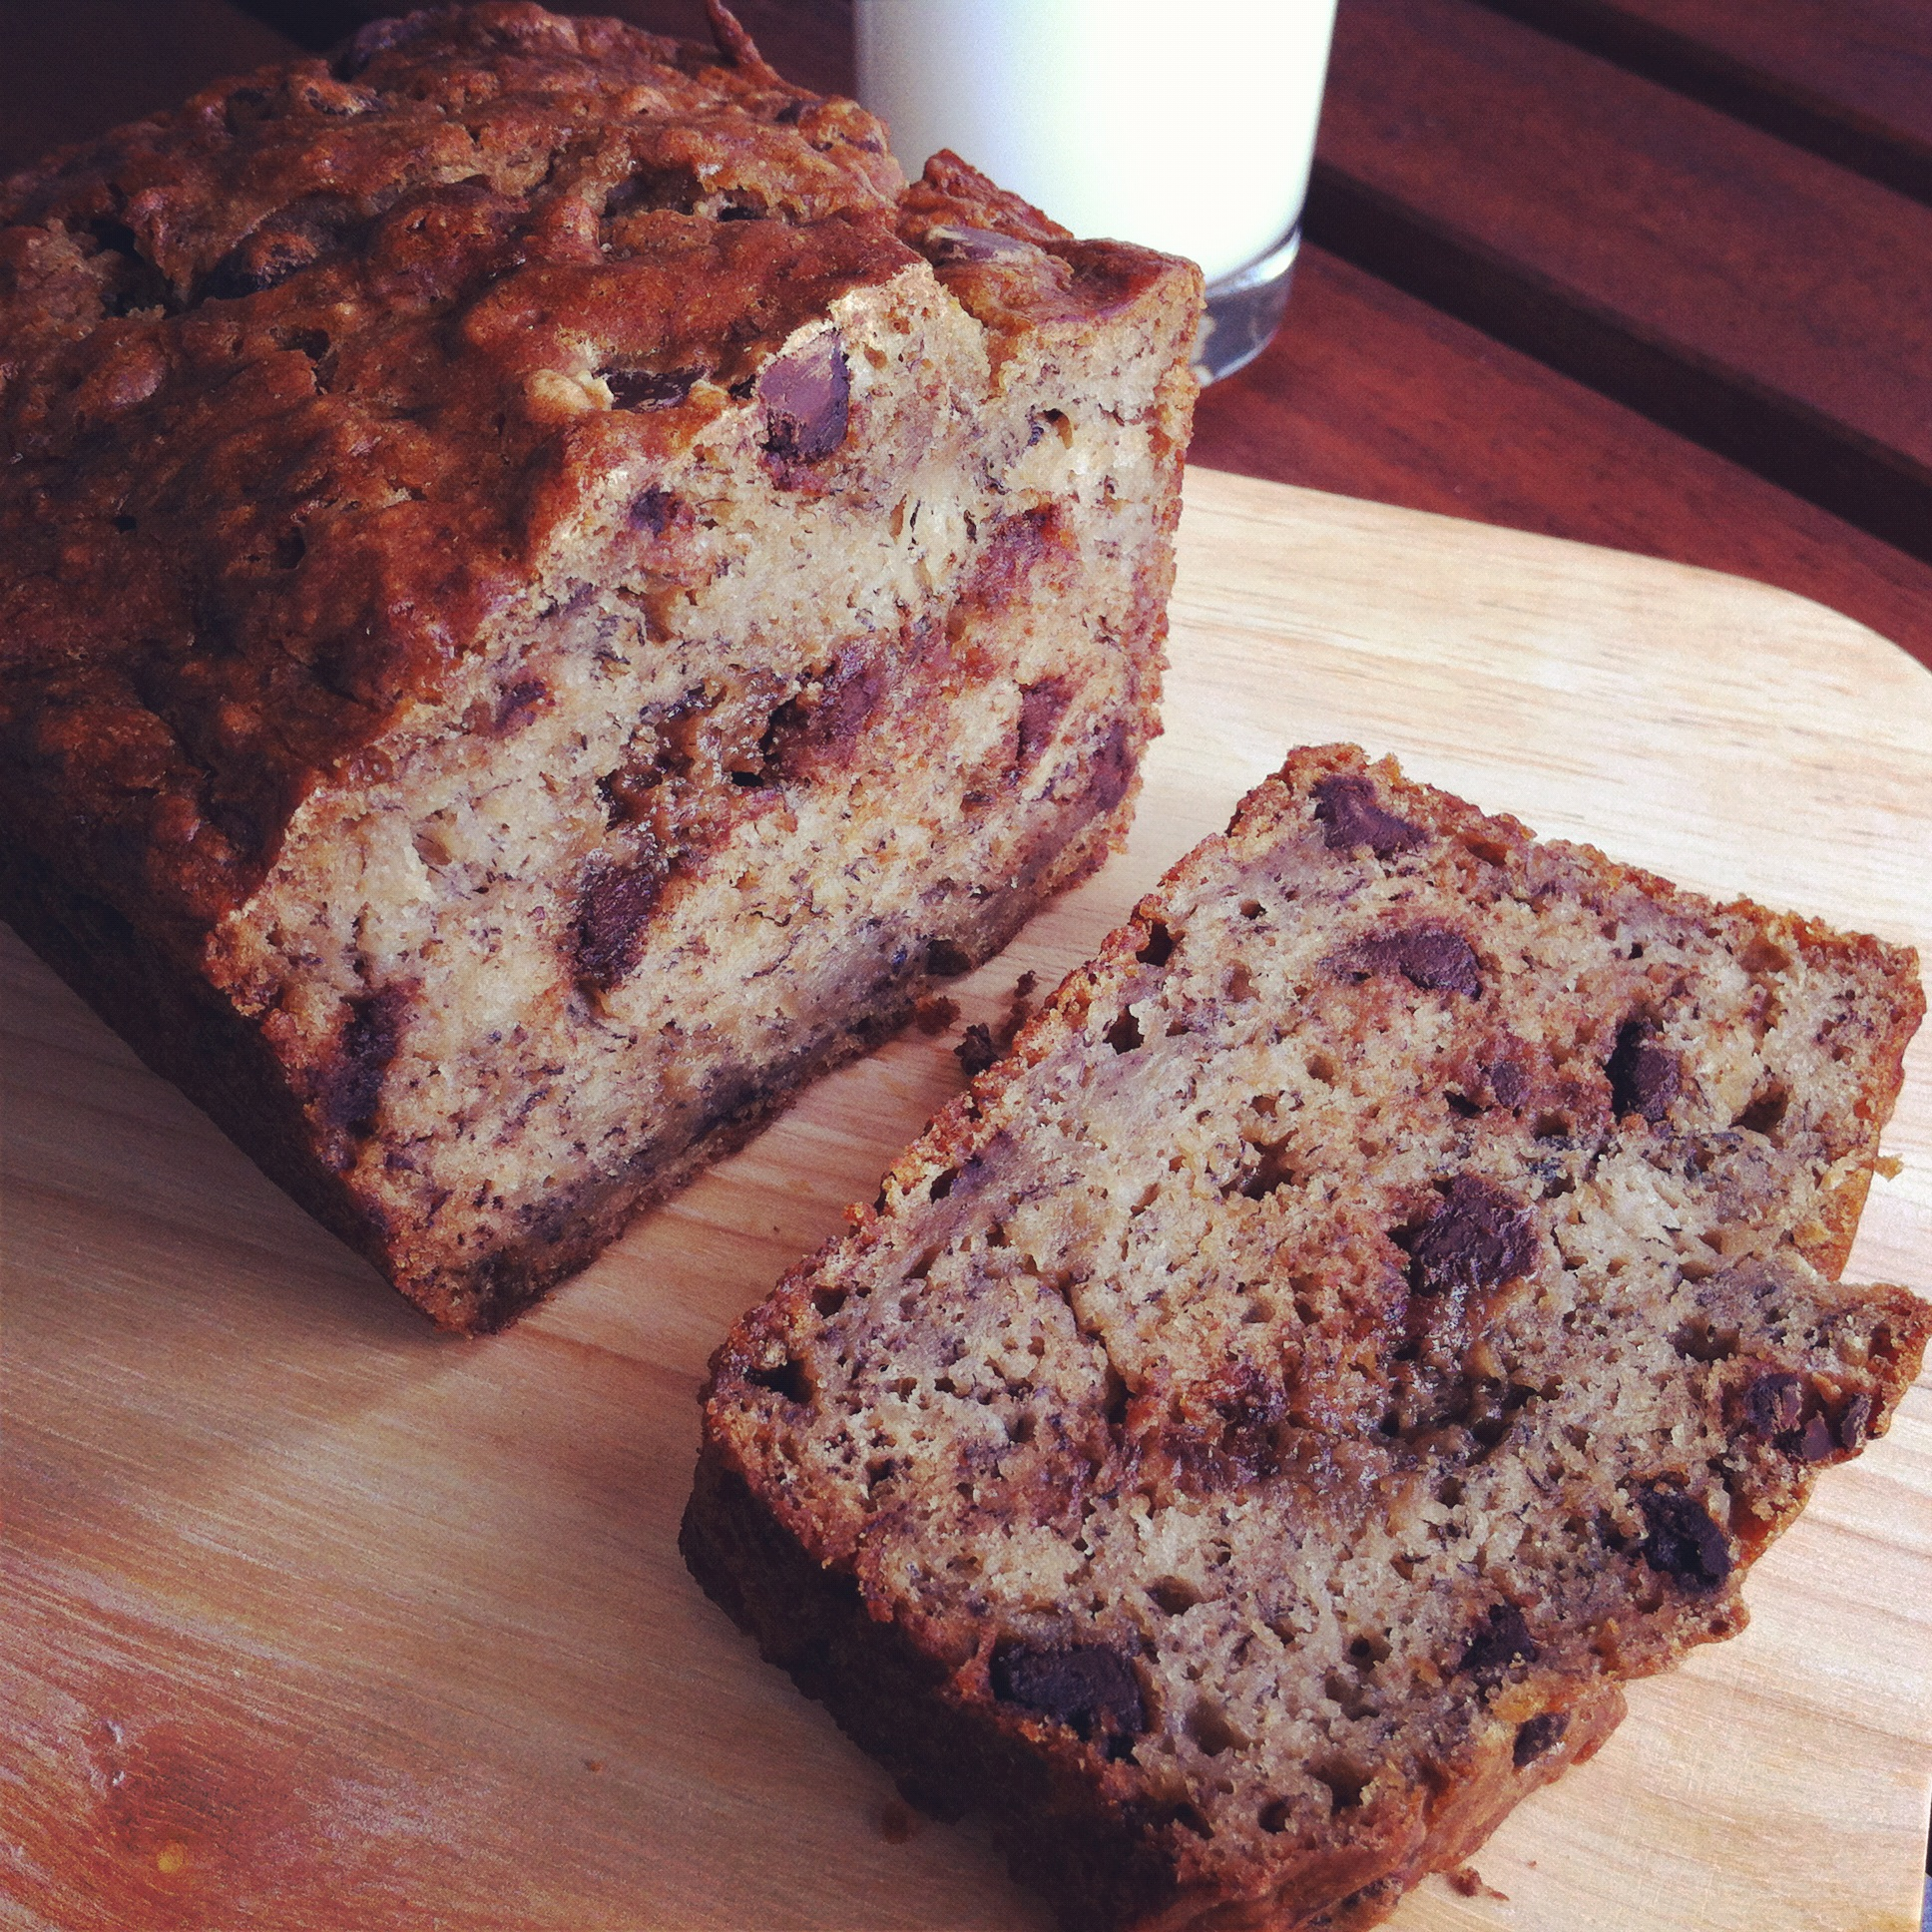 Late night snack: Chocolate Chip Banana Bread | A Little Breather